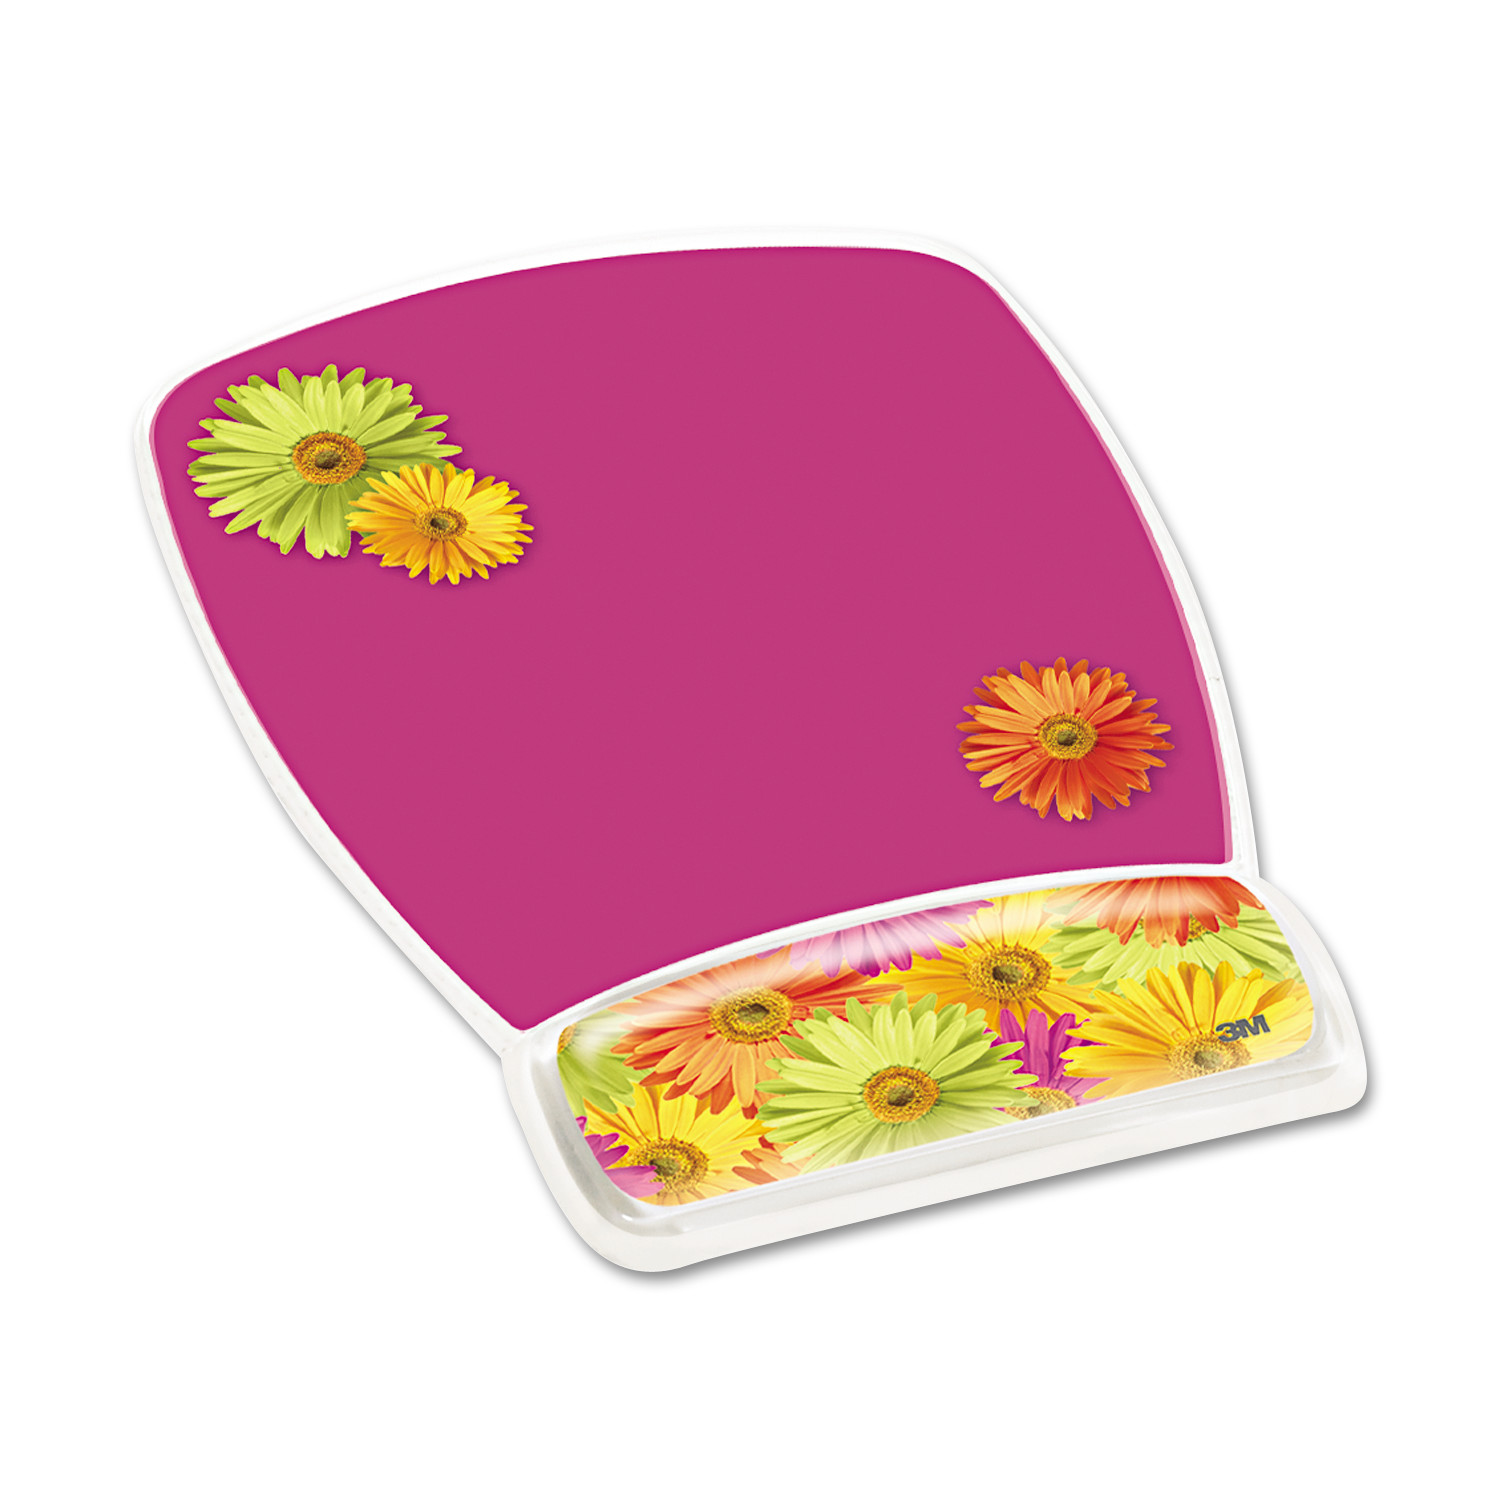 3M Fun Design Clear Gel Mouse Pad Wrist Rest, 6 4 5 x 8 3 5 x 3 4, Daisy Design by 3M